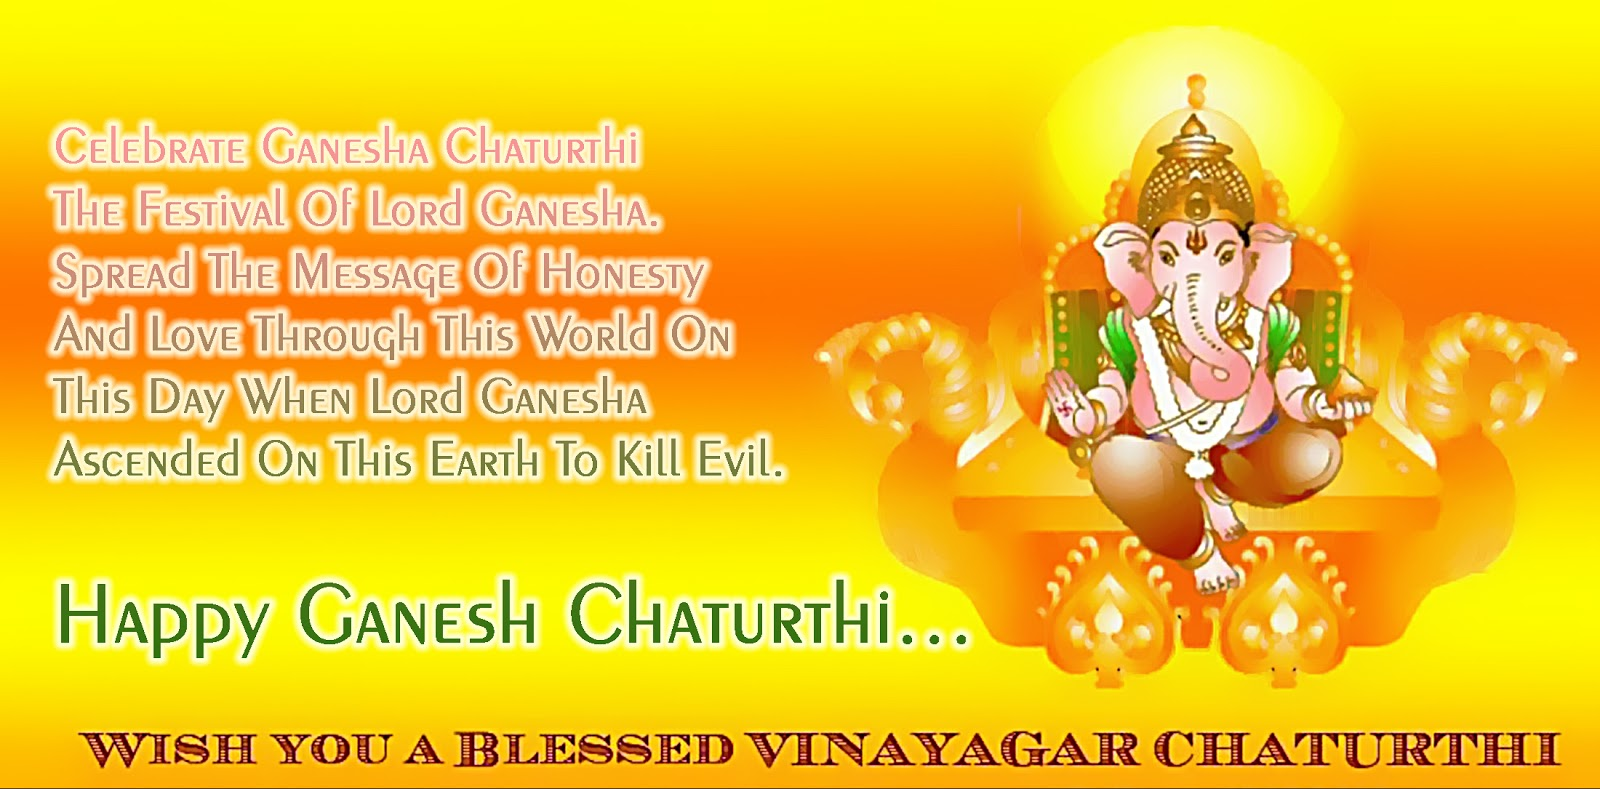 Ganesh chaturthi wishes greeting for whatsapp and facebook status ganesh chaturthi wishes greeting for whatsapp and facebook status kristyandbryce Image collections